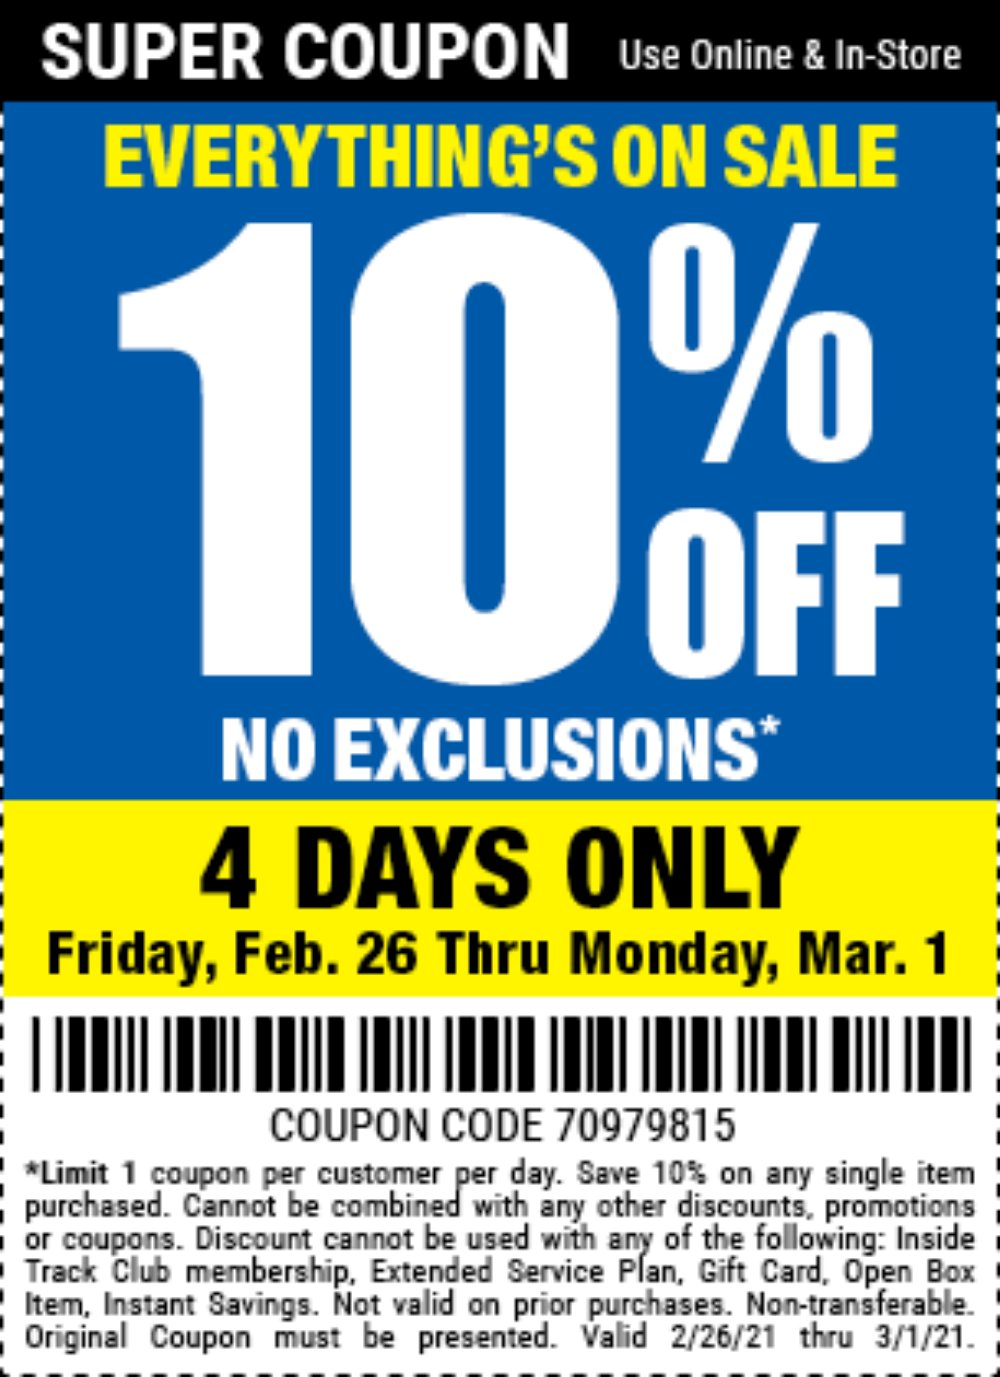 Harbor Freight Coupon, HF Coupons - 10% off